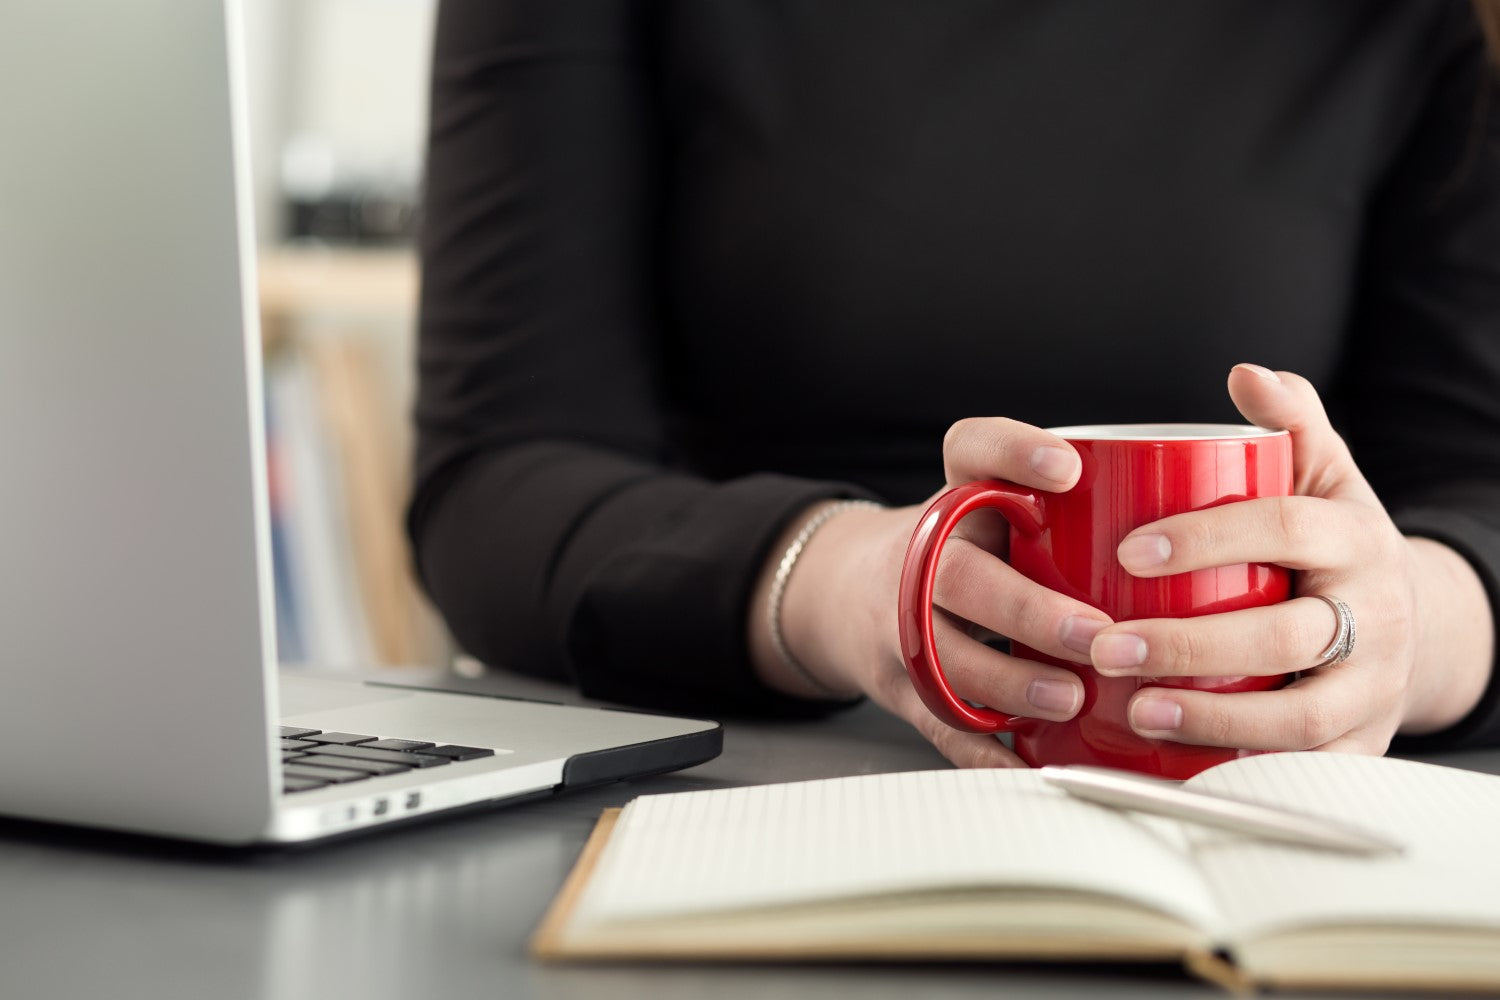 holding red cup with coffee